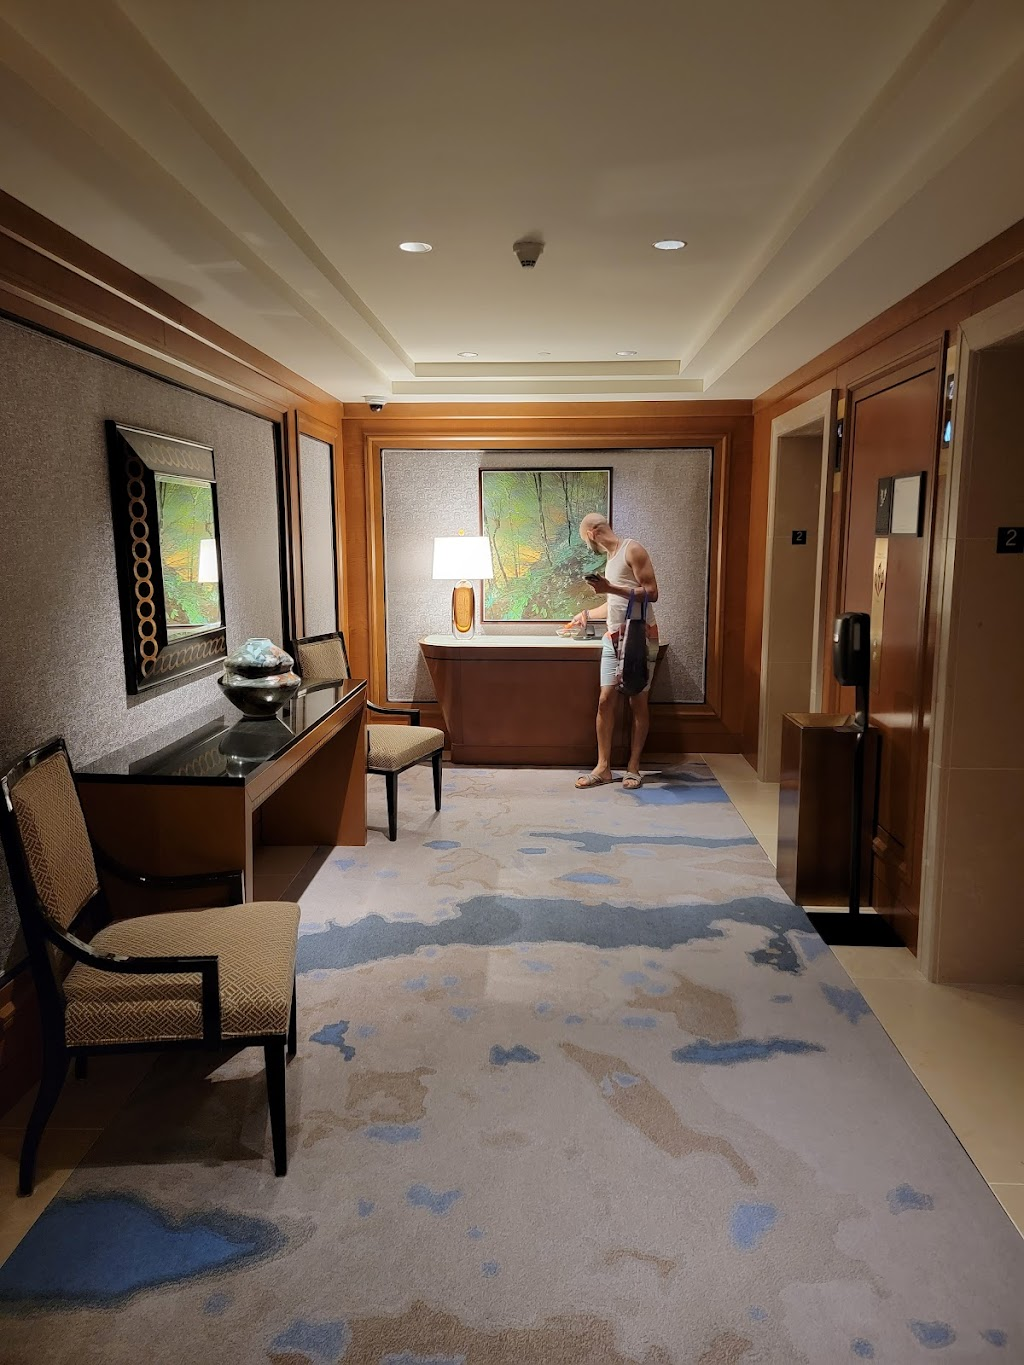 The Umstead Hotel and Spa - spa  | Photo 8 of 10 | Address: 100 Woodland Pond Dr, Cary, NC 27513, USA | Phone: (919) 447-4000